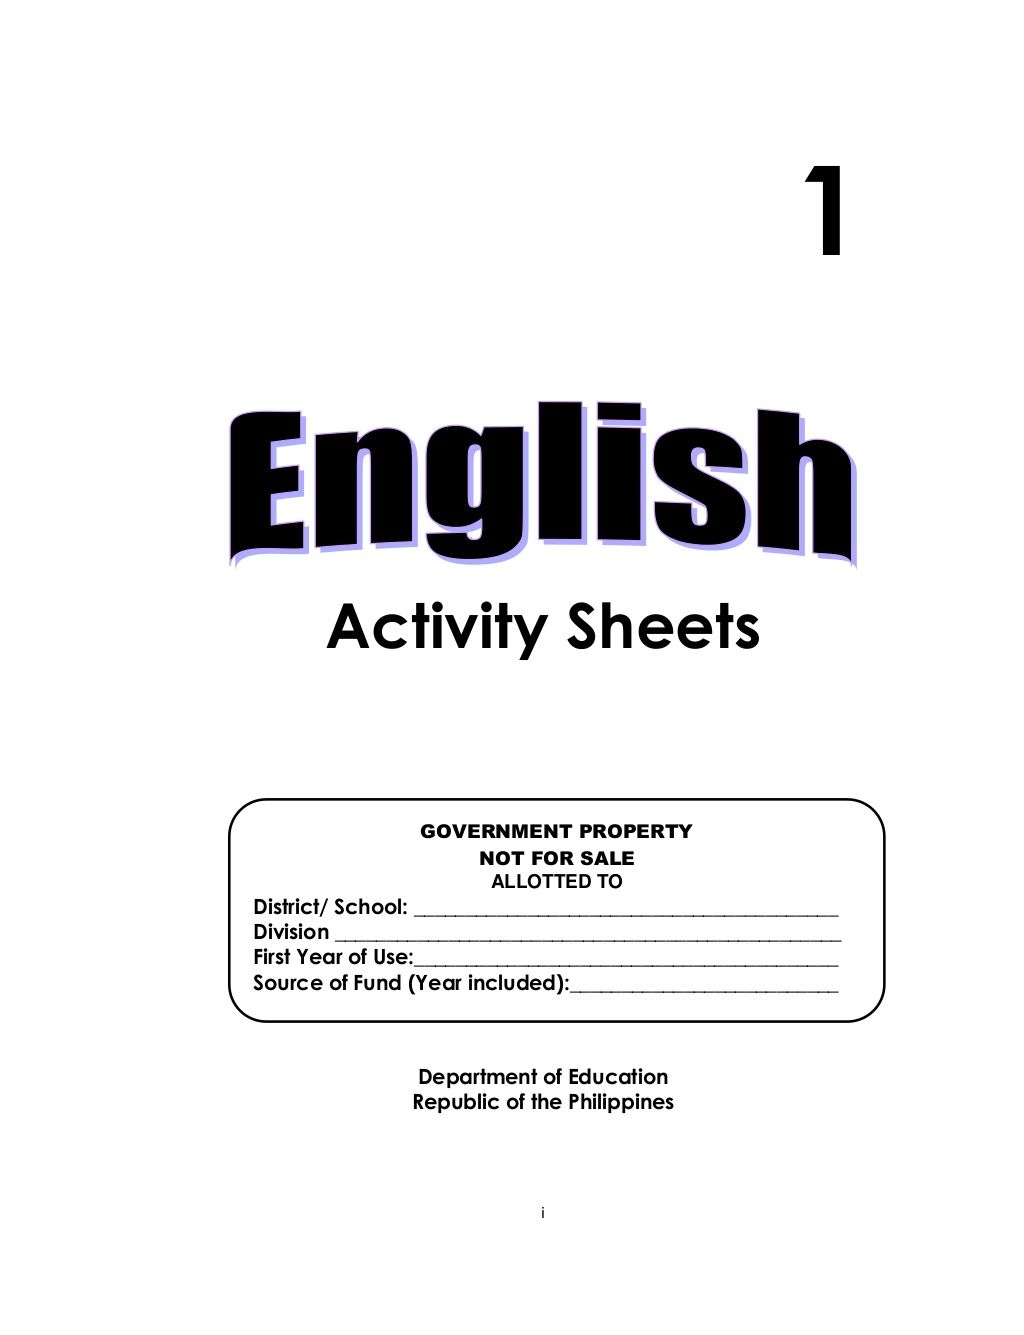 I Activity Sheets Department Of Education Republic Of The